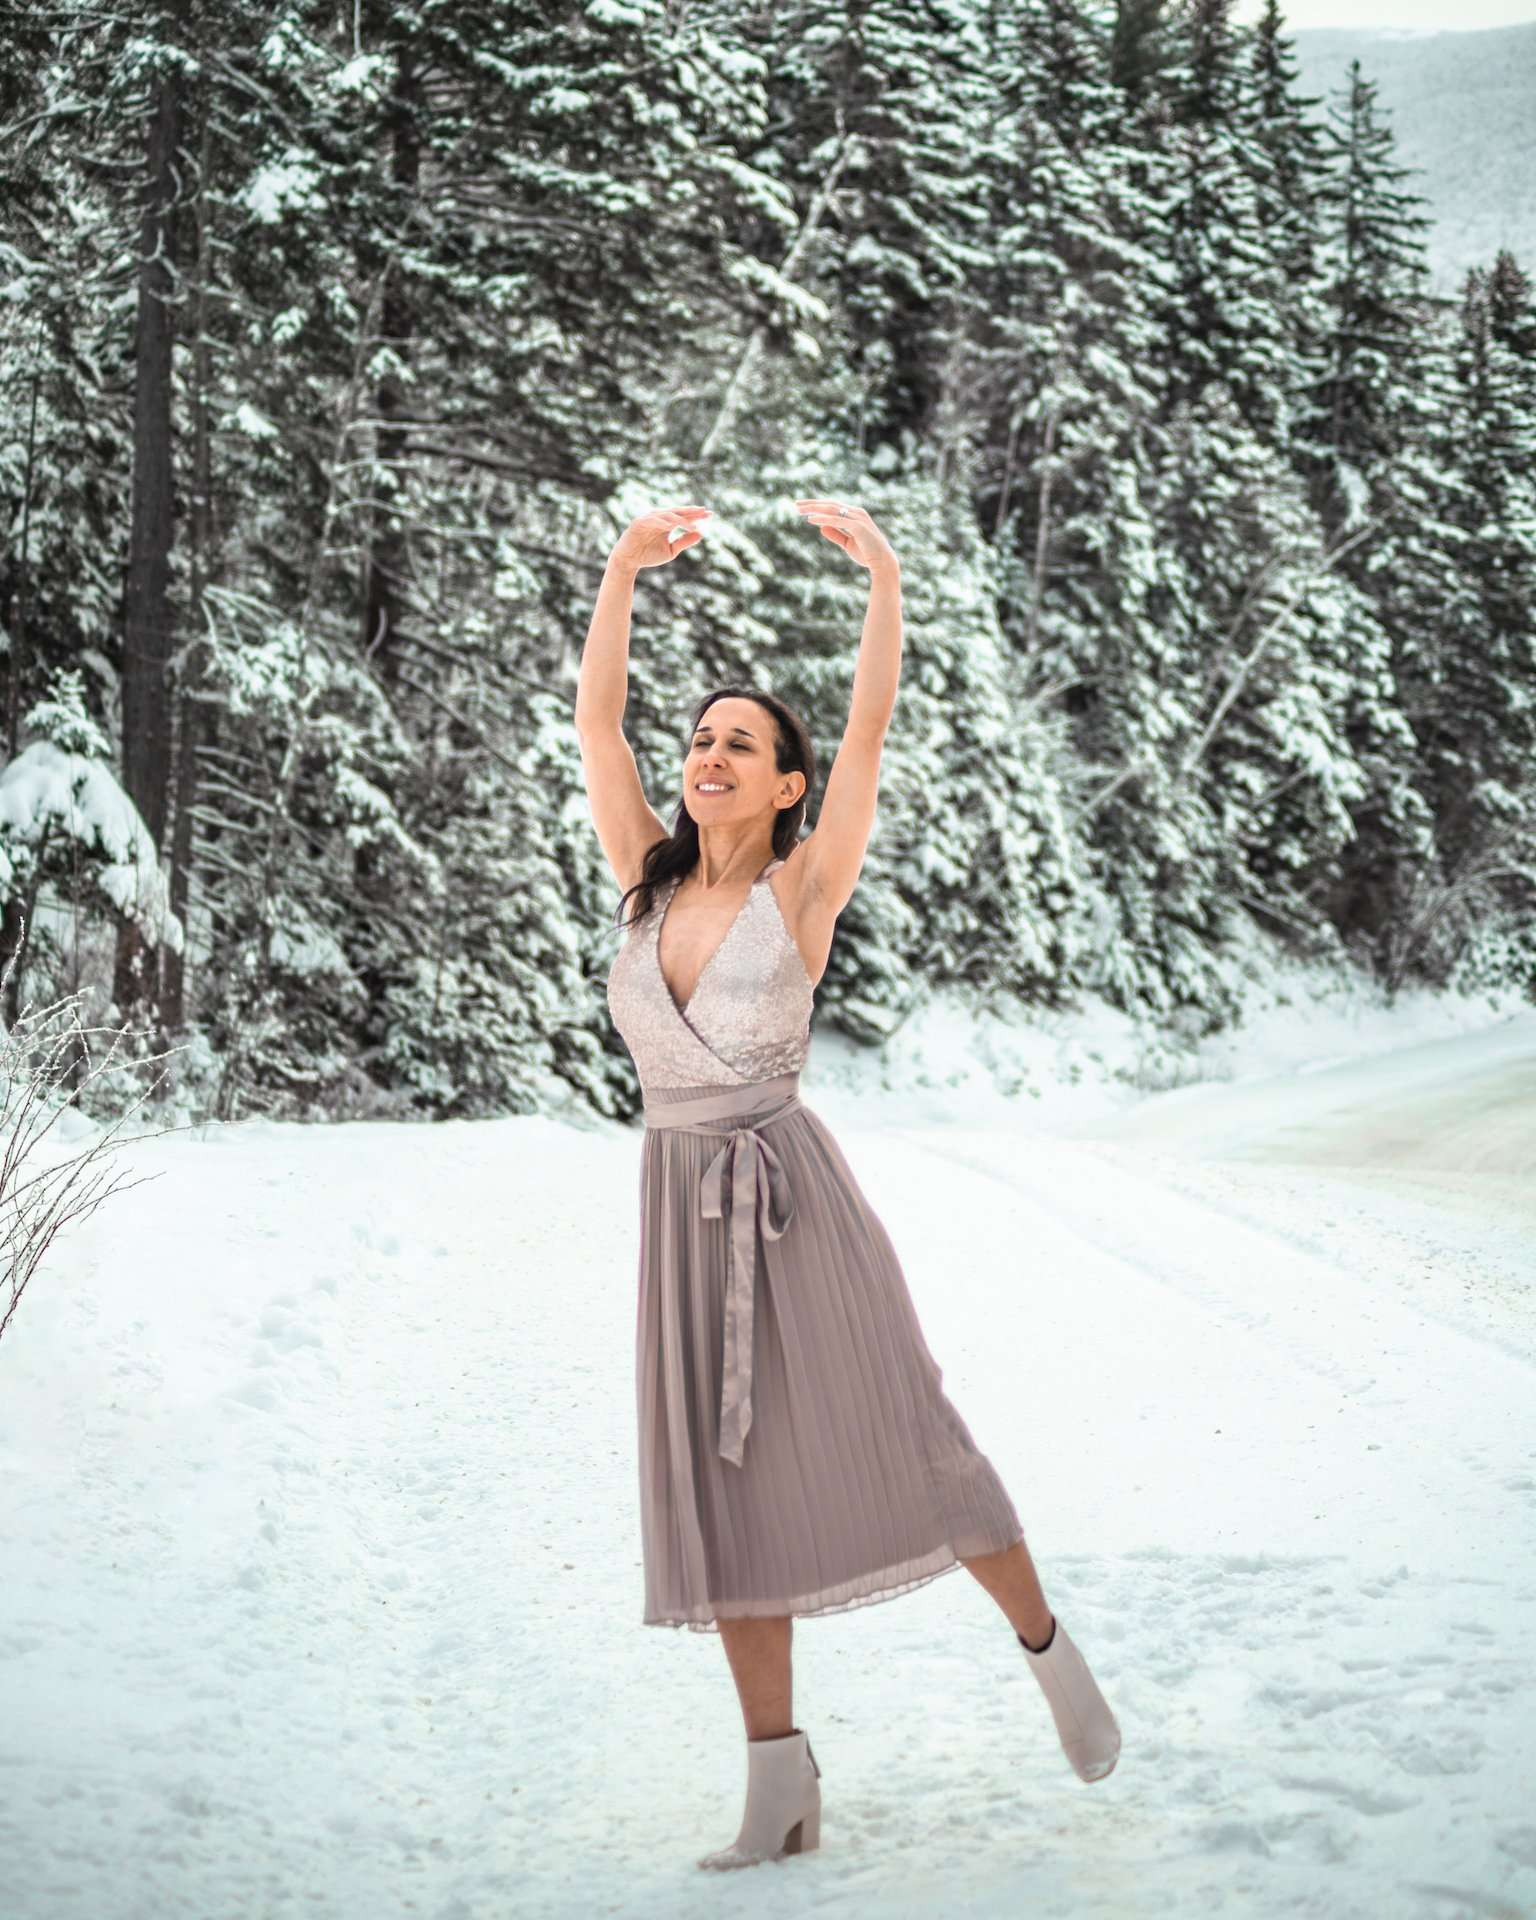 girl in dress dancing in snow